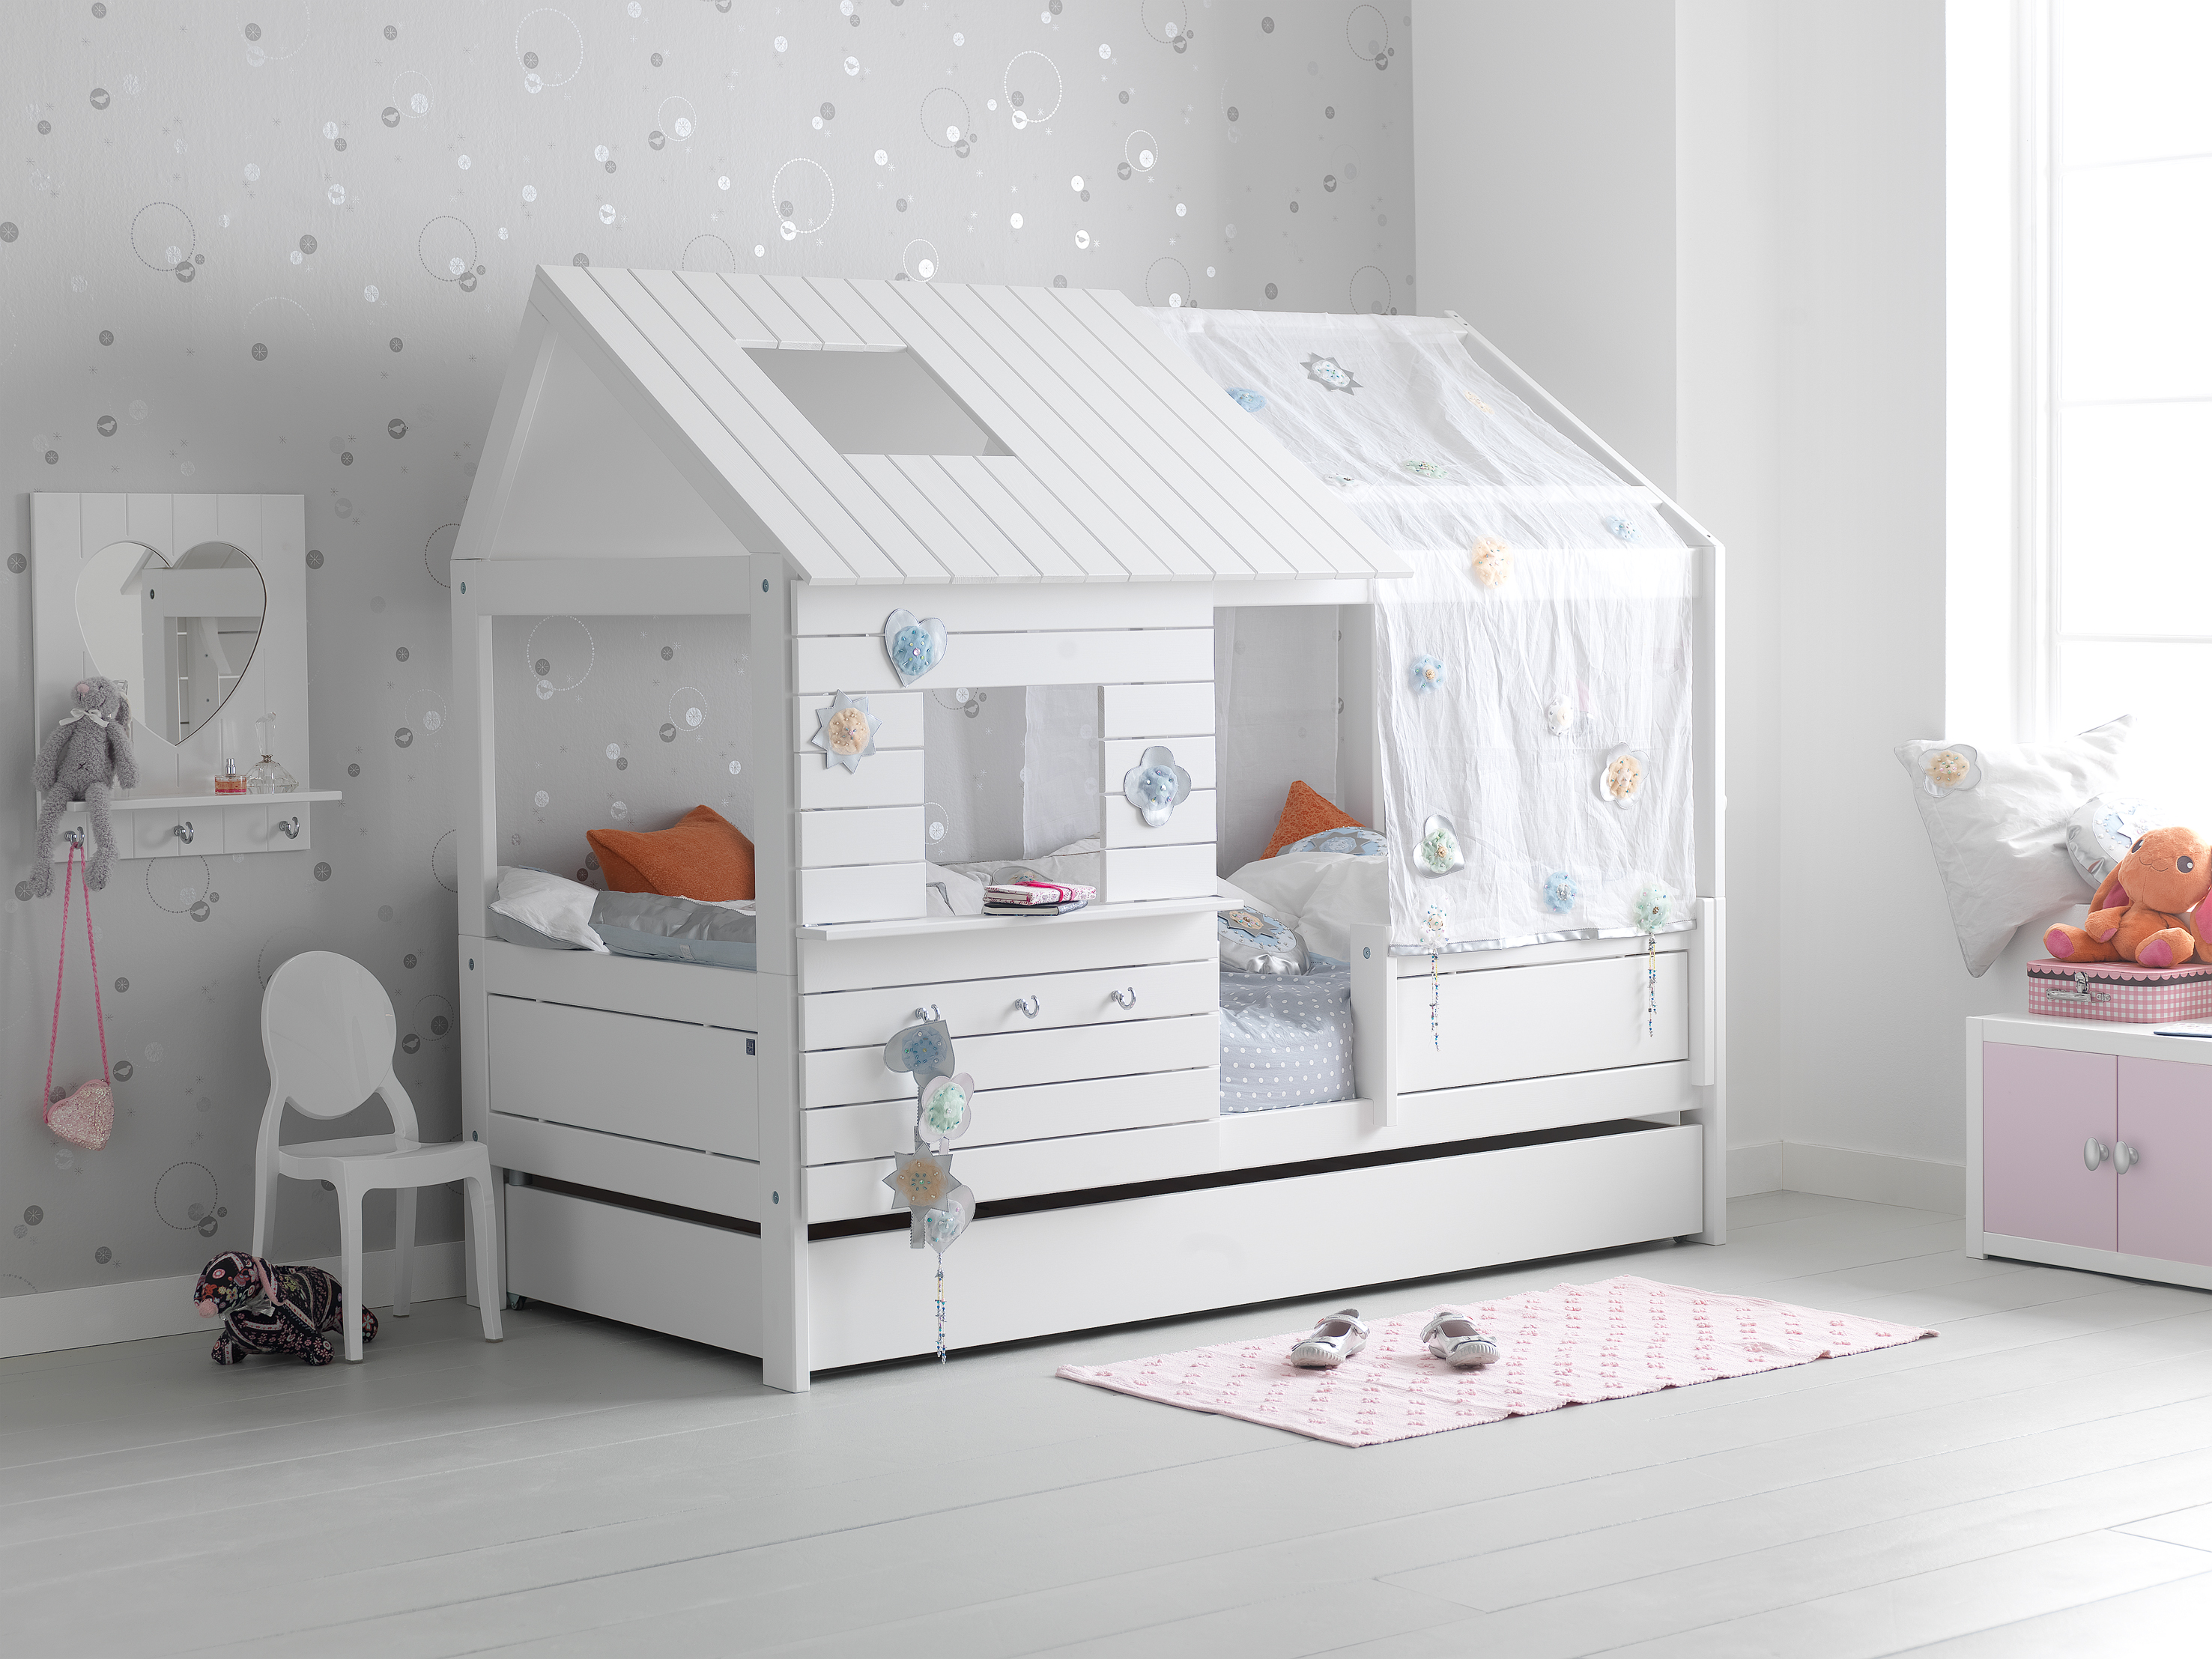 nordica casetta cameretta bambine belv torino. Black Bedroom Furniture Sets. Home Design Ideas